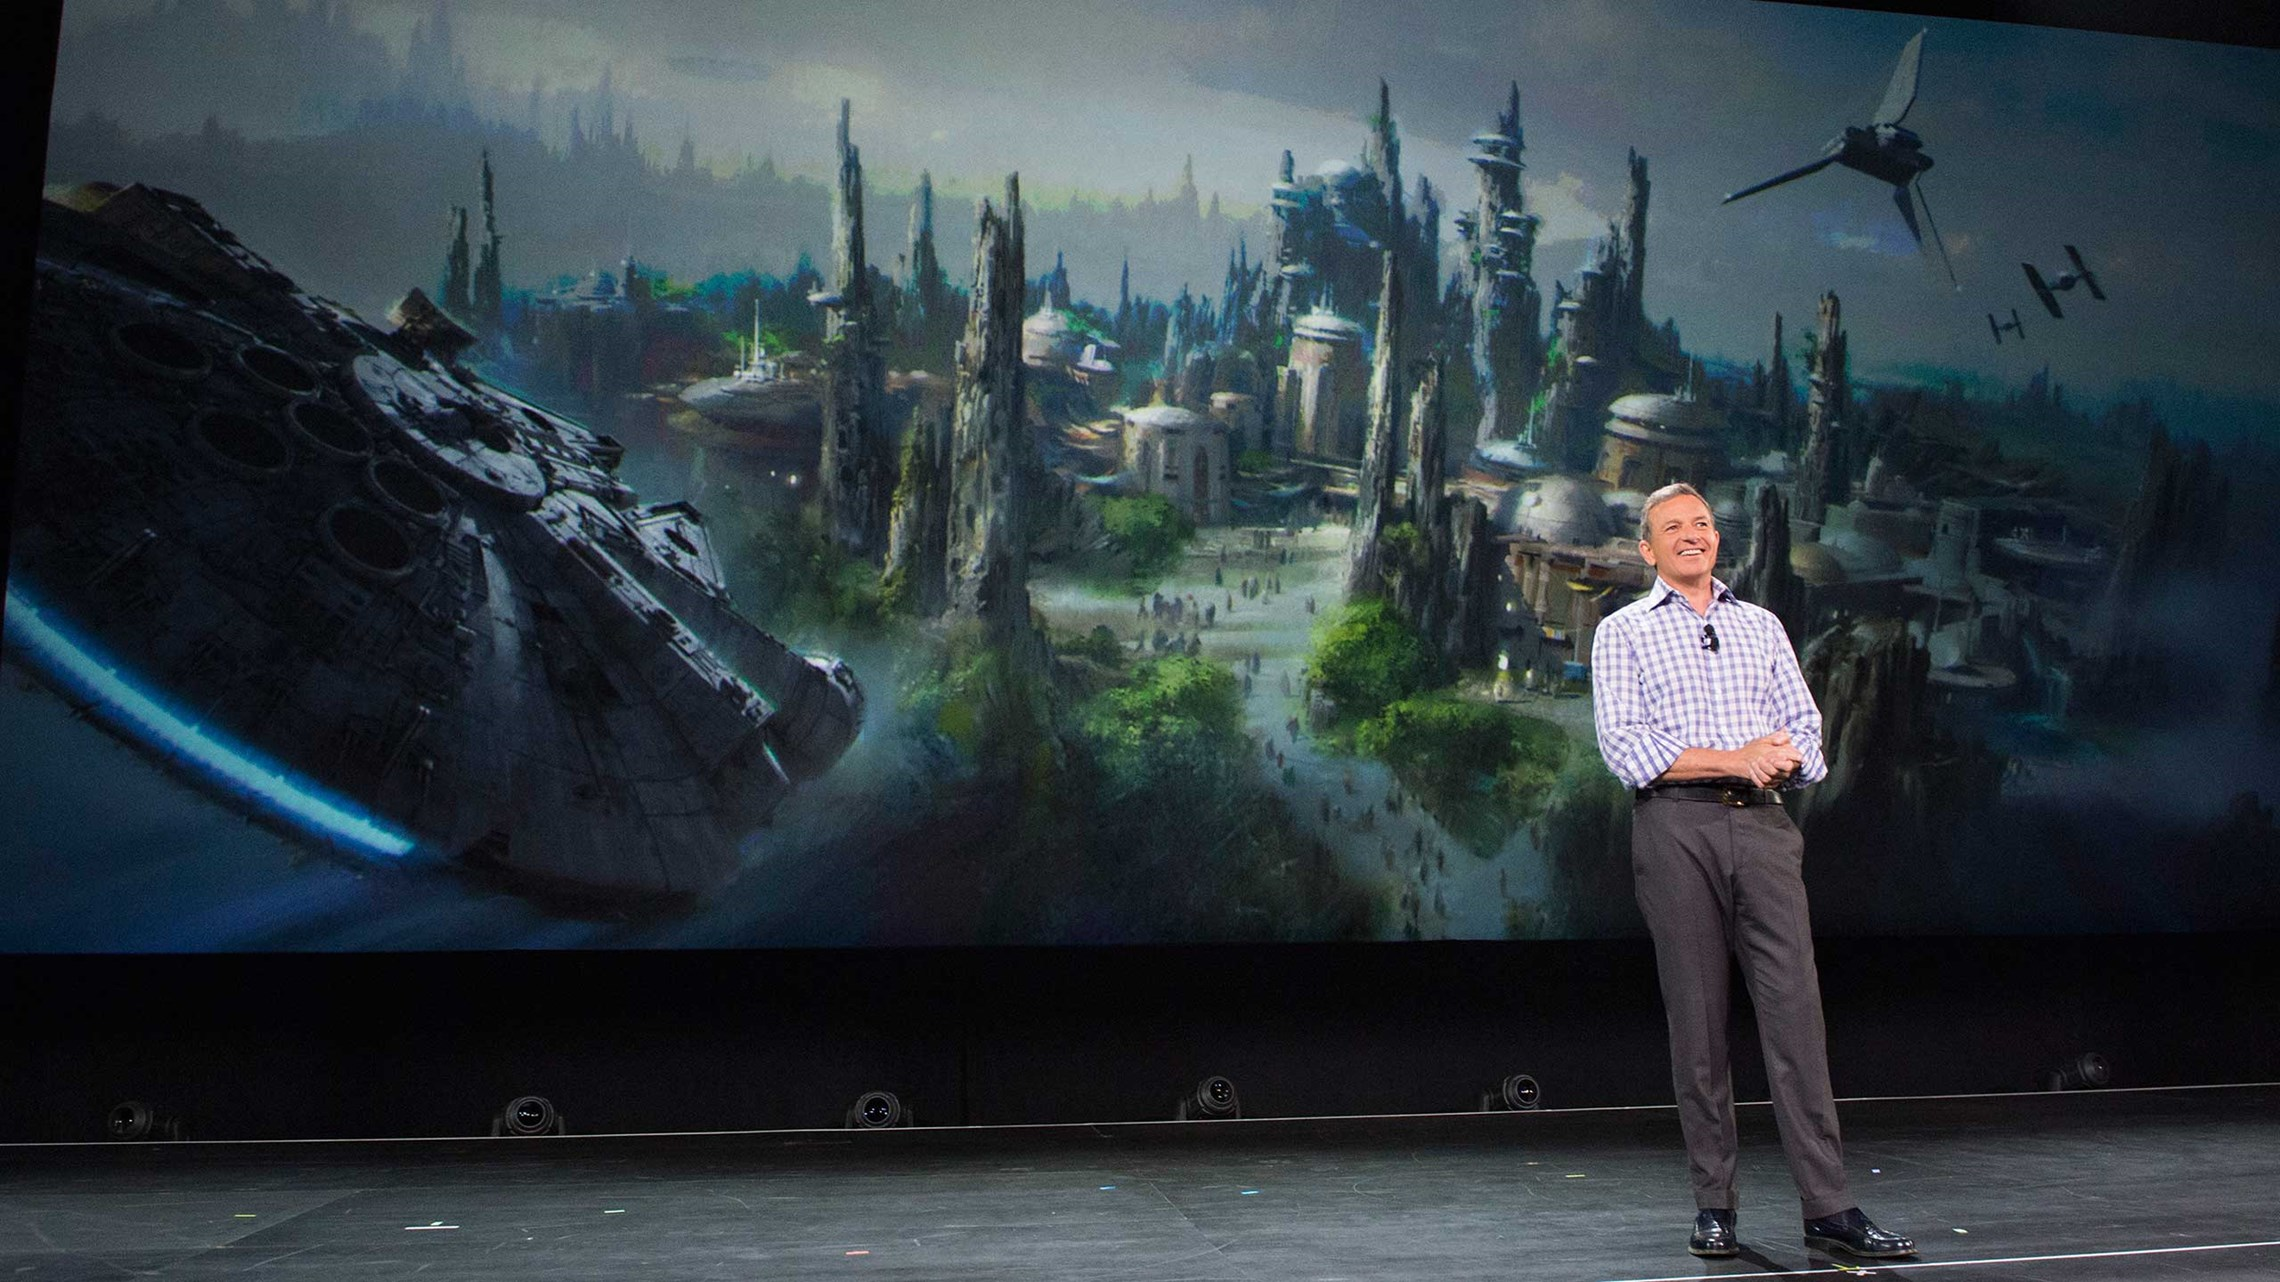 Star Wars Land overview